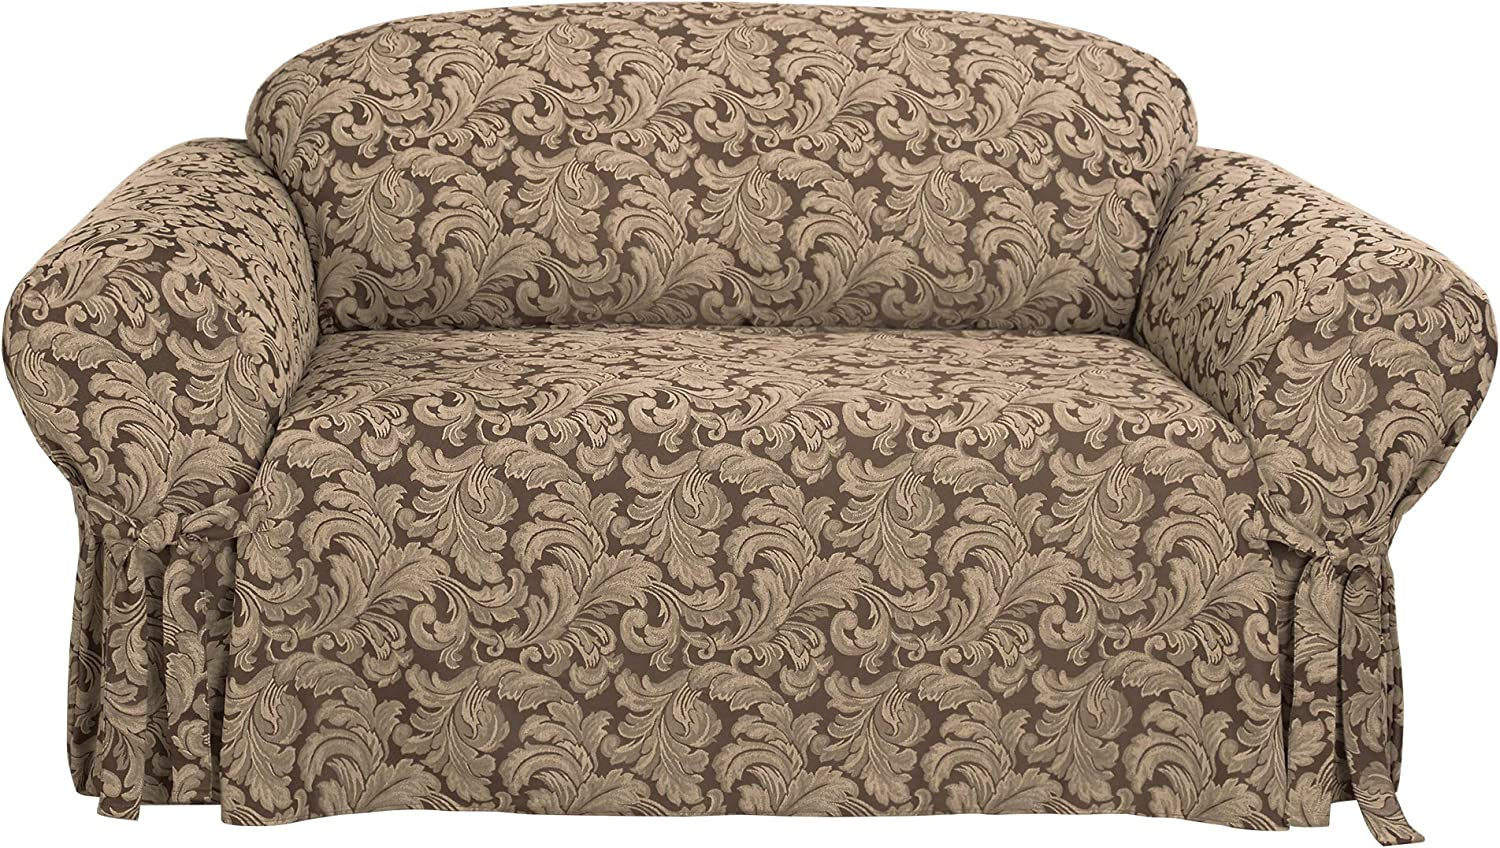 SureFit Home Decor Scroll Damask Box Cushion Loveseat One Piece Slipcover, Relaxed Fit, Cotton/Polyester, Machine Washable, Brown Color